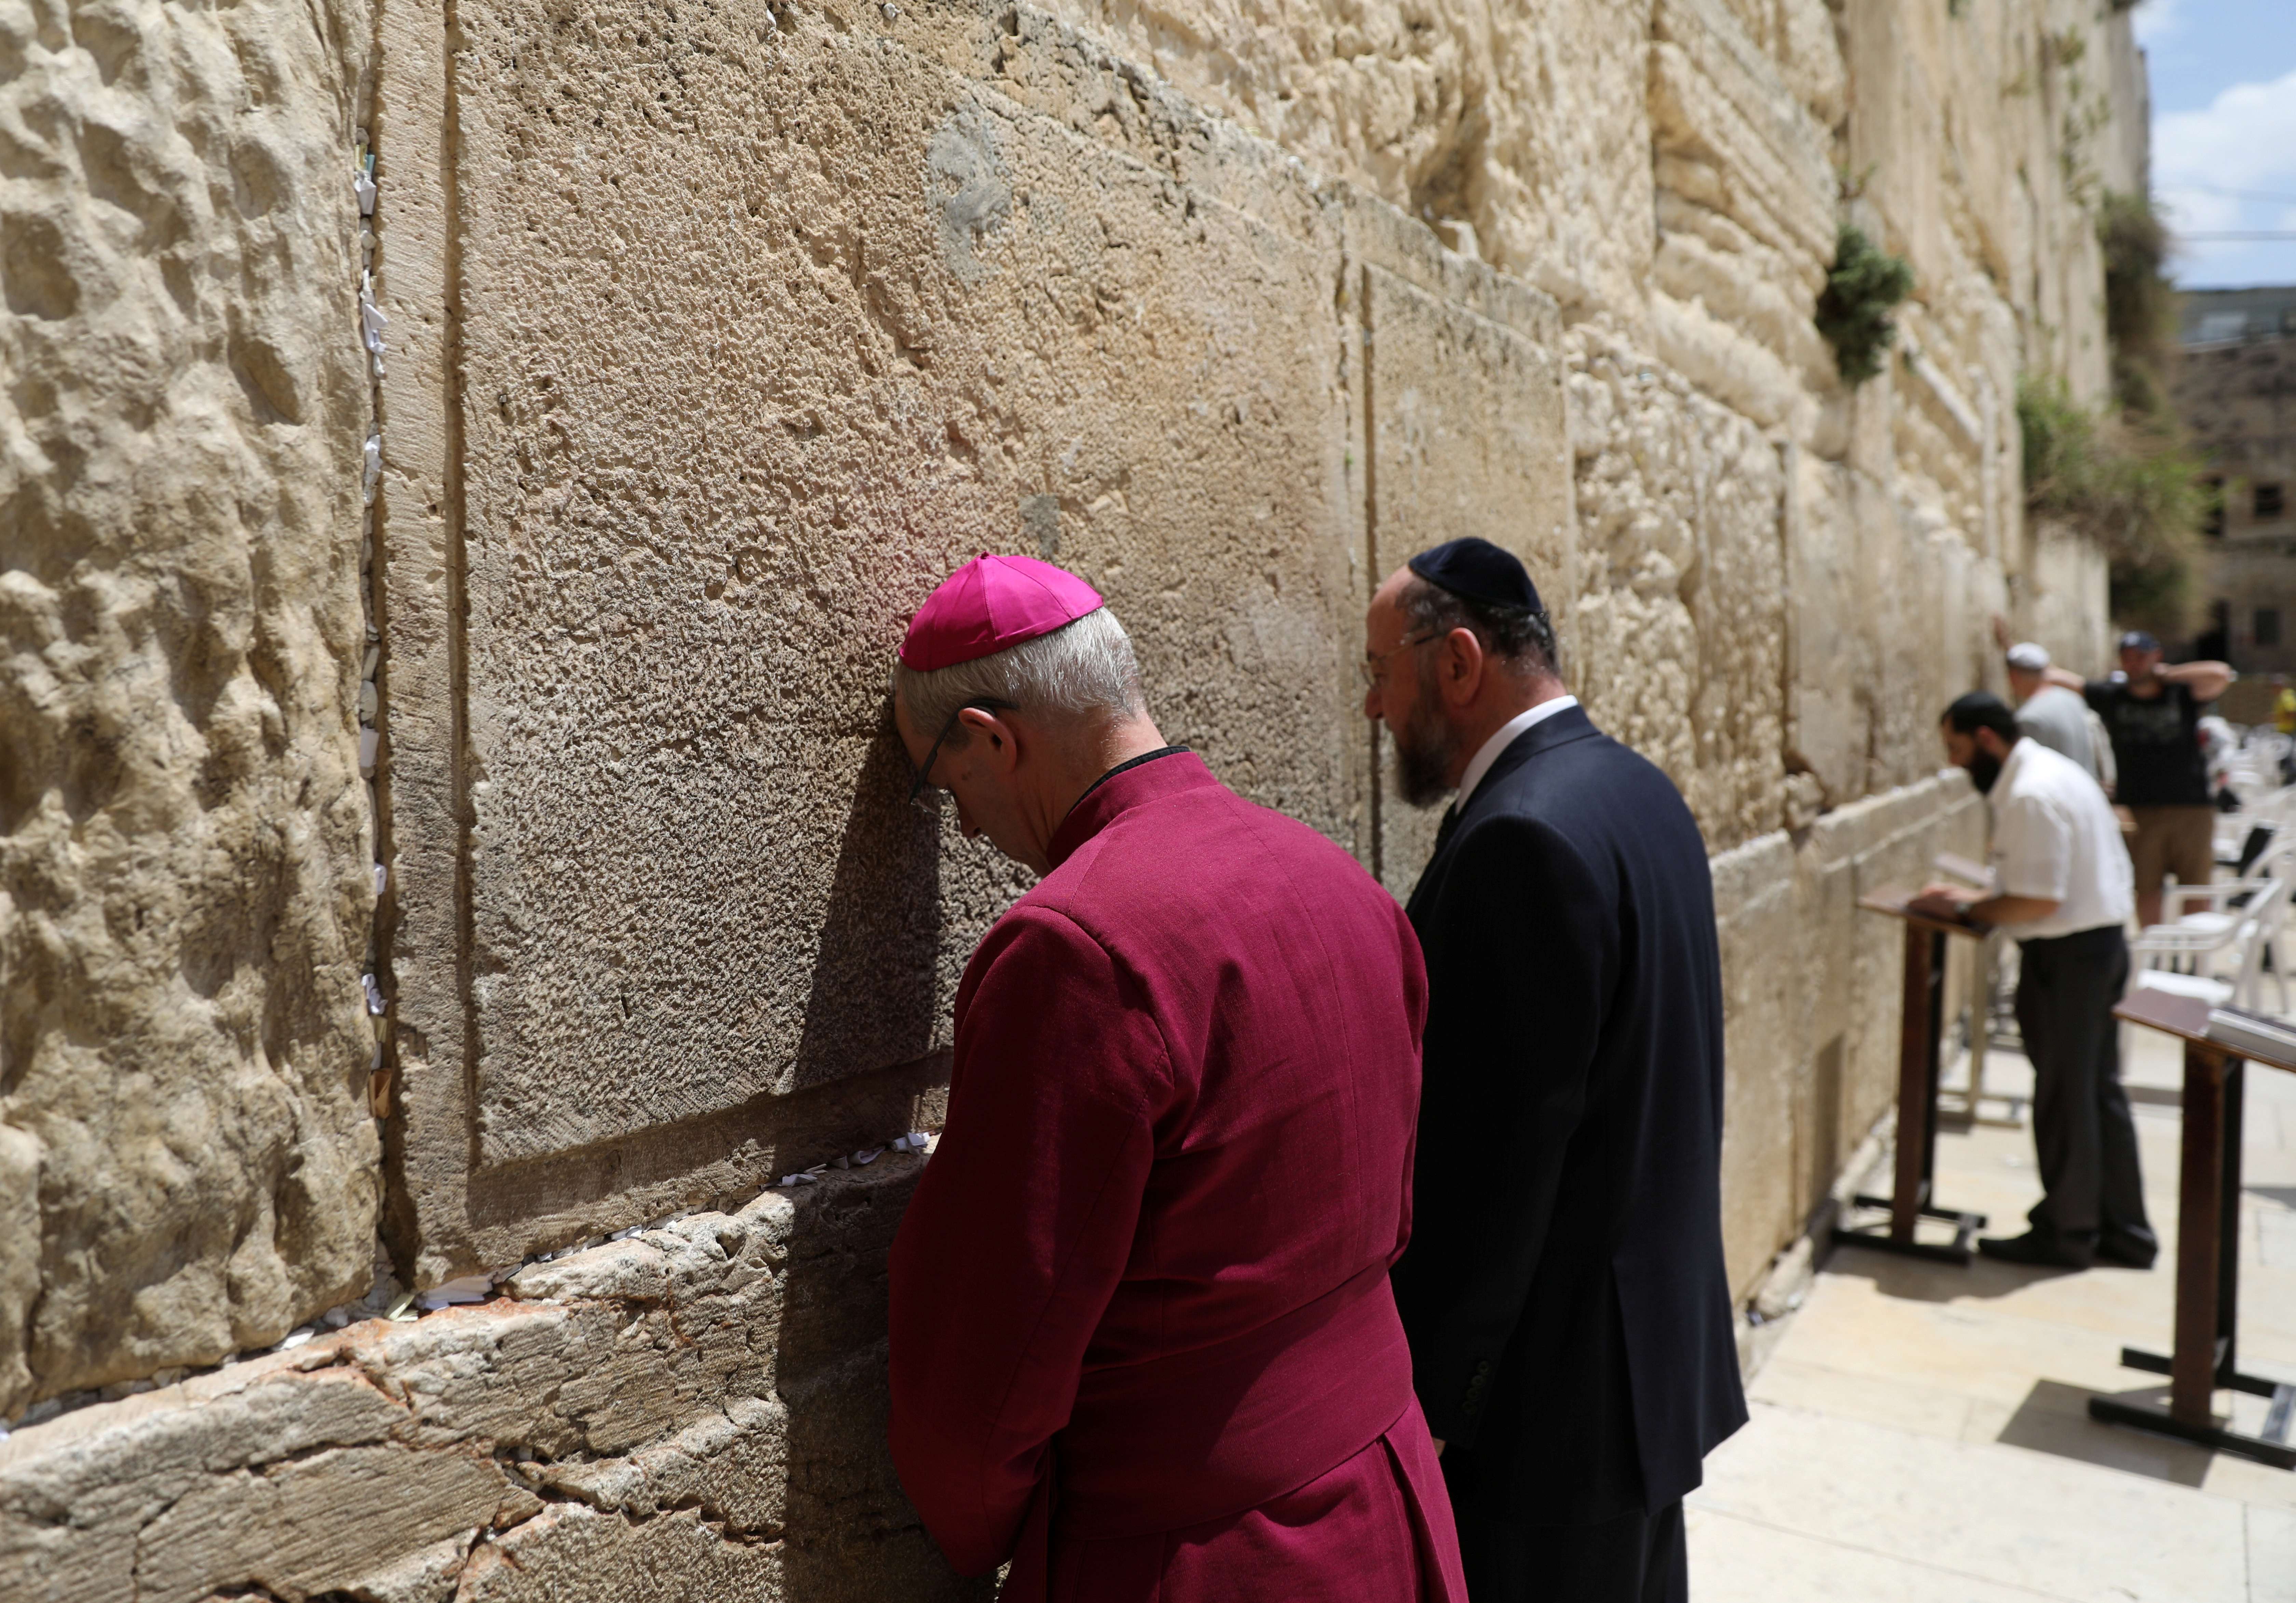 JERUSALEM 2017-05-03 Archbishop of Canterbury, Justin Welby, touches the Western Wall as he stands next to Britain's Chief Rabbi, Ephraim Mirvis during their visit to the Western Wall, in Jerusalem's Old City May 3, 2017. REUTERS/Ronen Zvulun TPX IMAGES OF THE DAY Photo: / REUTERS / TT / kod 72000